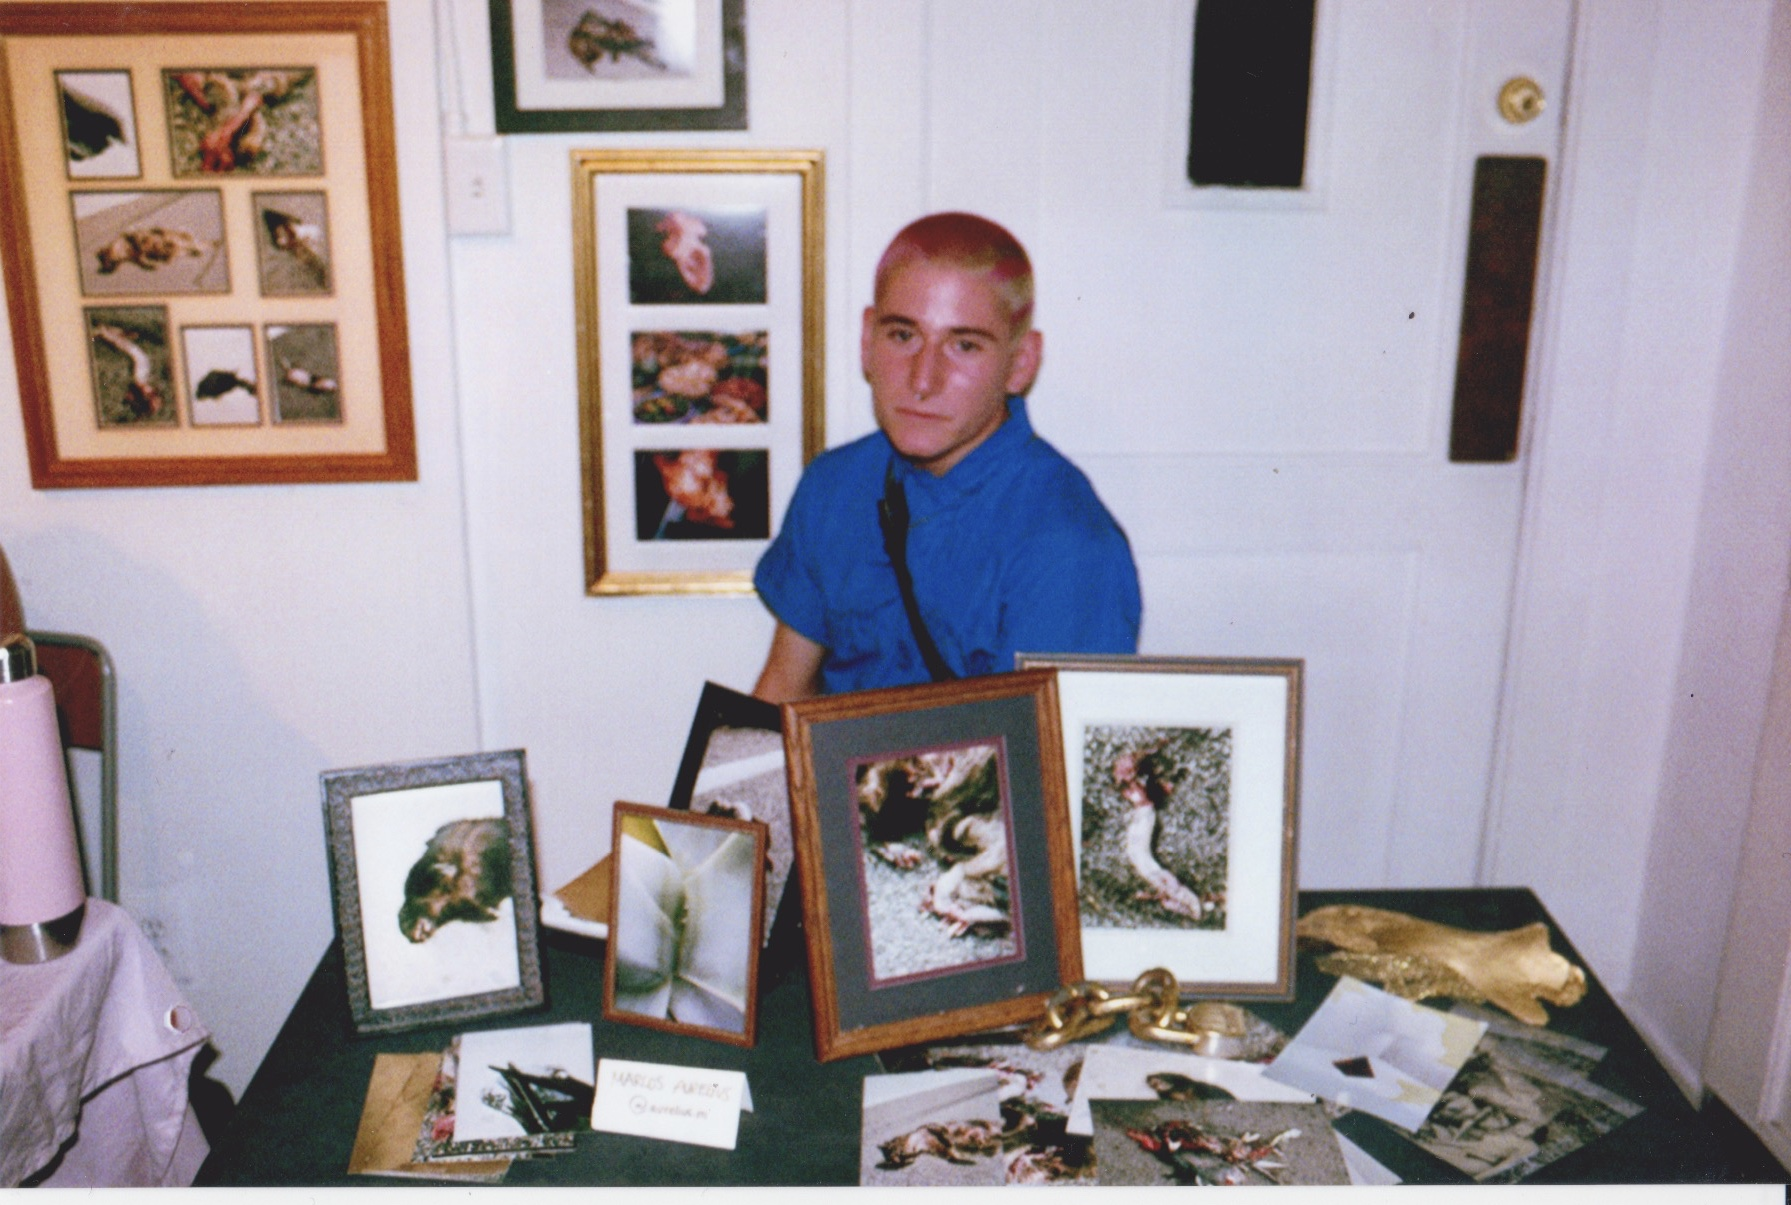 Marcos Aurelius with his photographs at Color Theory Club II